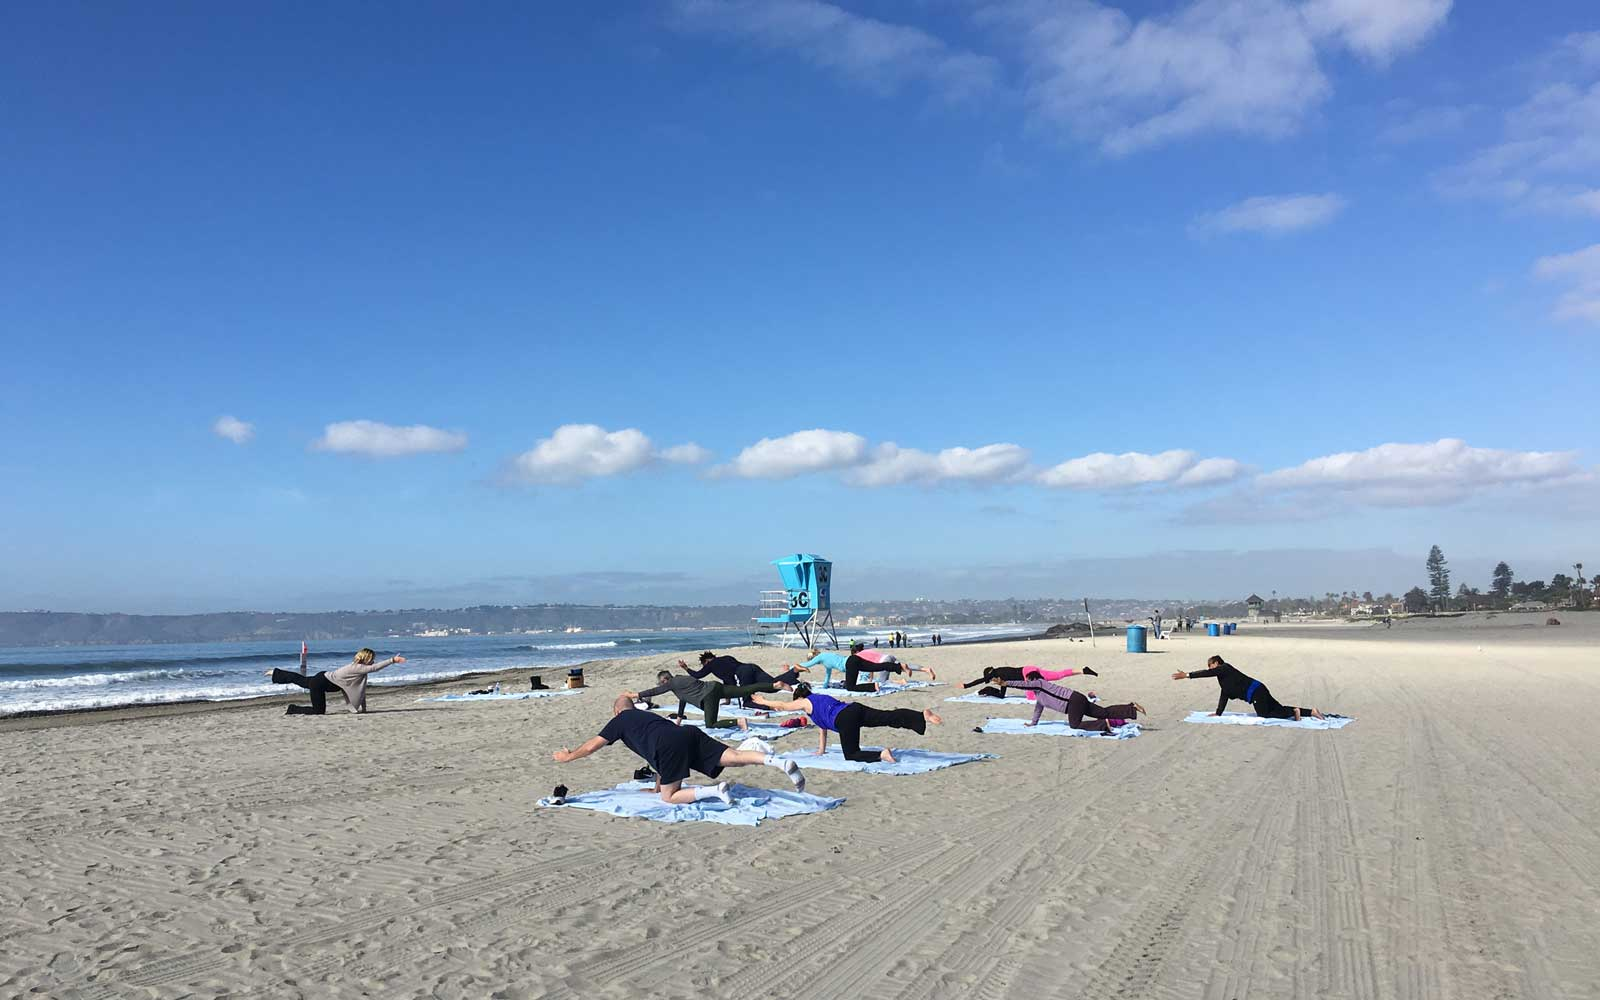 Yoga on Coronado Island Beach, San Diego